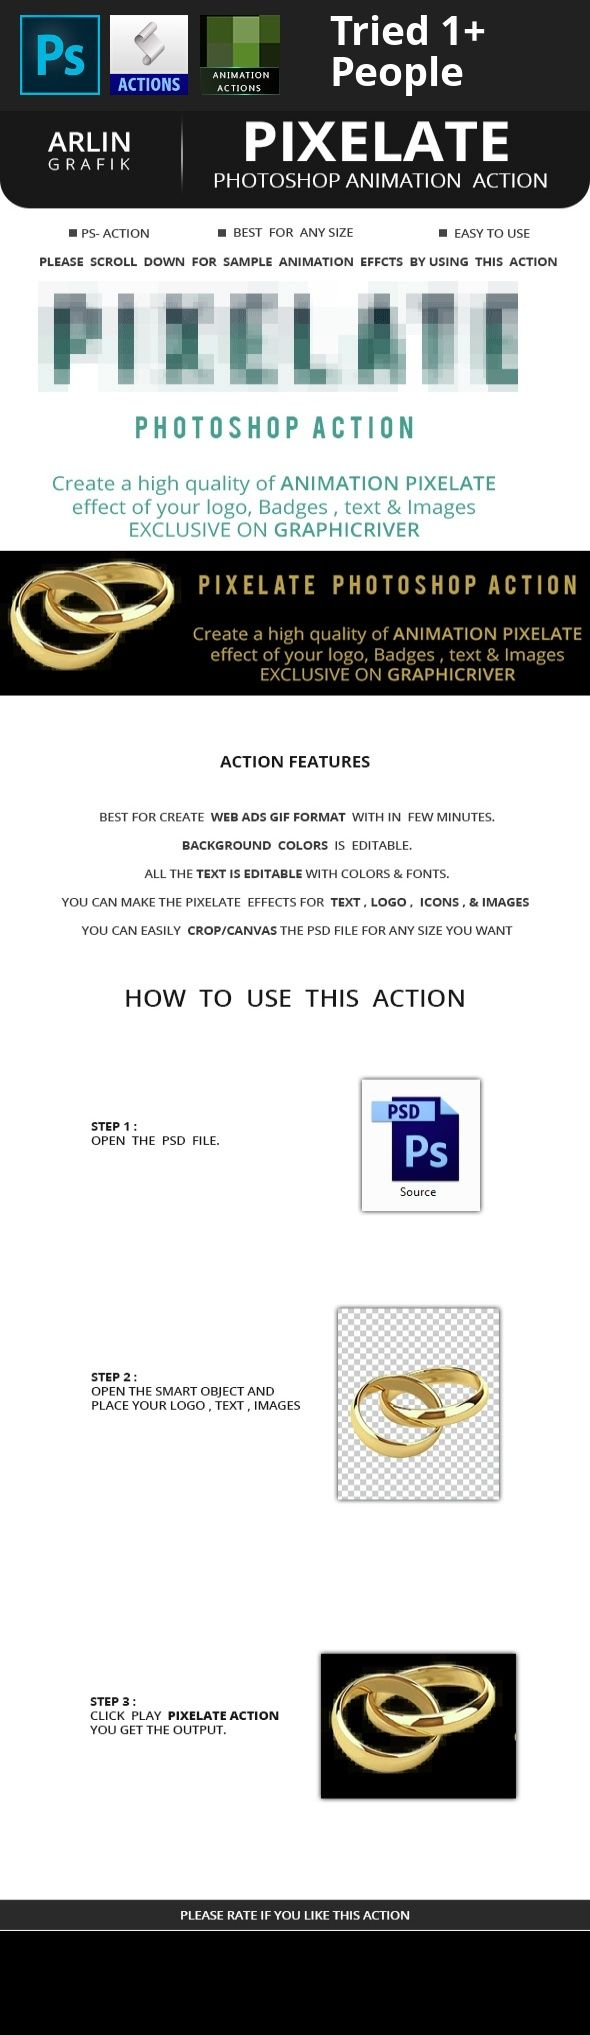 action, ads, animation, animation action, animation ads, free, generate, gif, logo, mockup, motion, photoshop action, pixel, pixel scatter, pixelate, preview, scatter, shatter, showcase, text, tutorial, web add   Pixelate Animation  Photoshop Action  Watch the above video tutorial for help Create high quality animated pixelate  effects for  your  Images ,Logos and Text .All layers are perfectly named and Group .This action will save your time  The action is working on Photoshop…